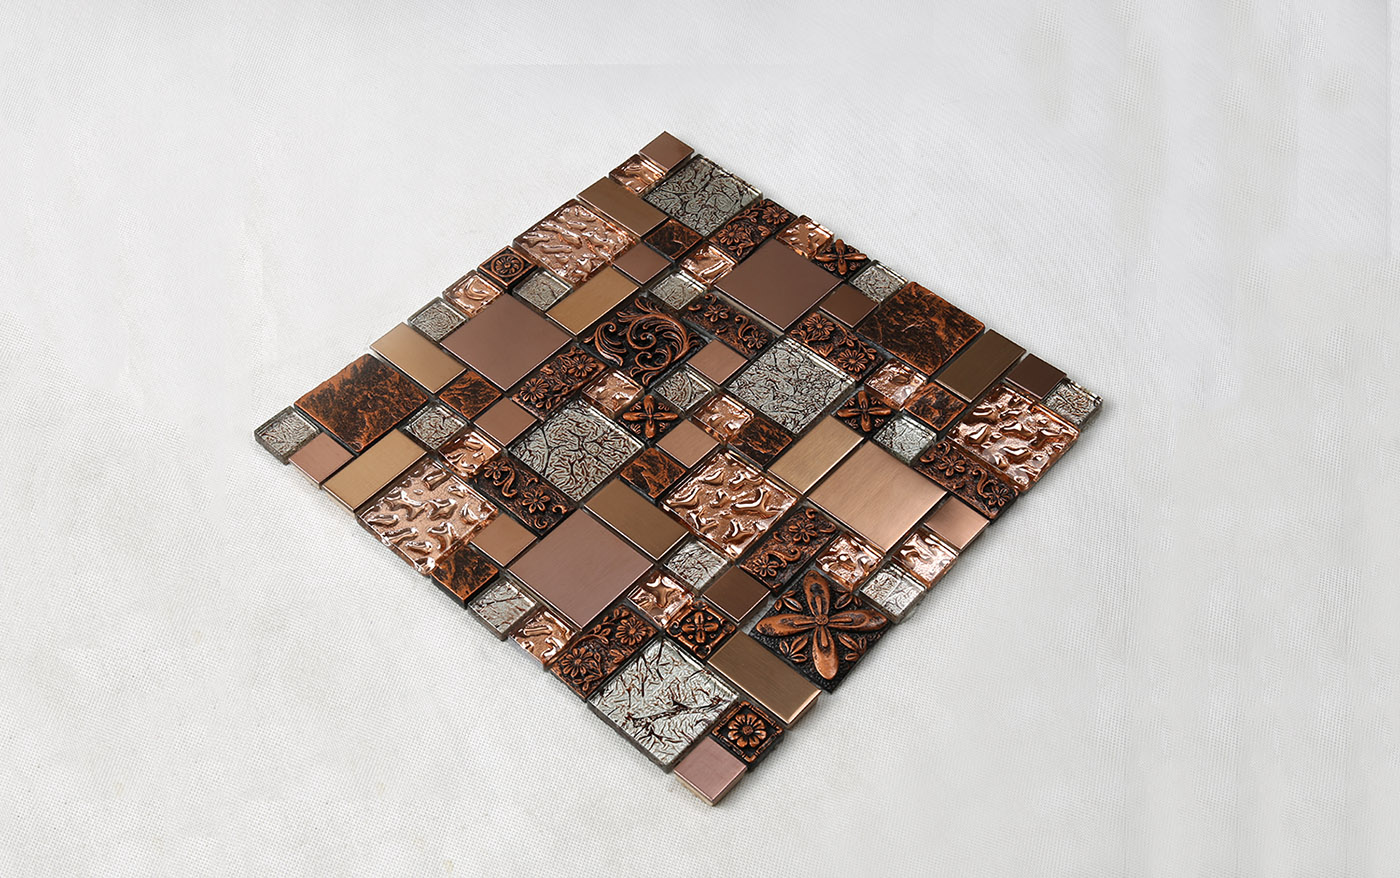 Heng Xing-Rose Gold Resin Metallic Glass Mosaic Tile Hxl09 - Hengsheng